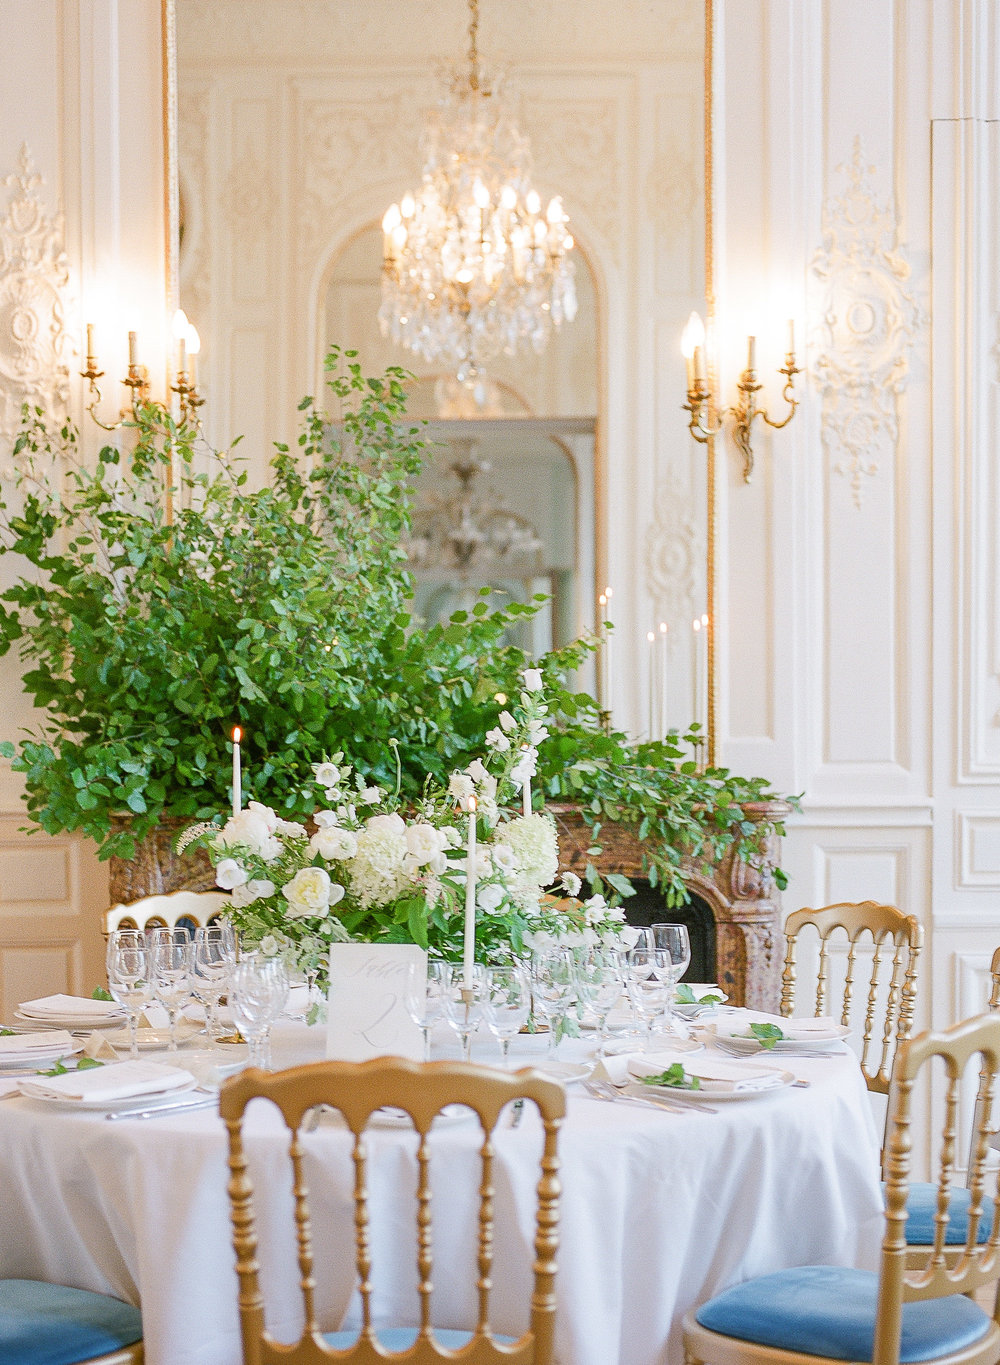 fine-art-french-wedding-florist-foraged-floral-paris-france-wedding-florist.jpg